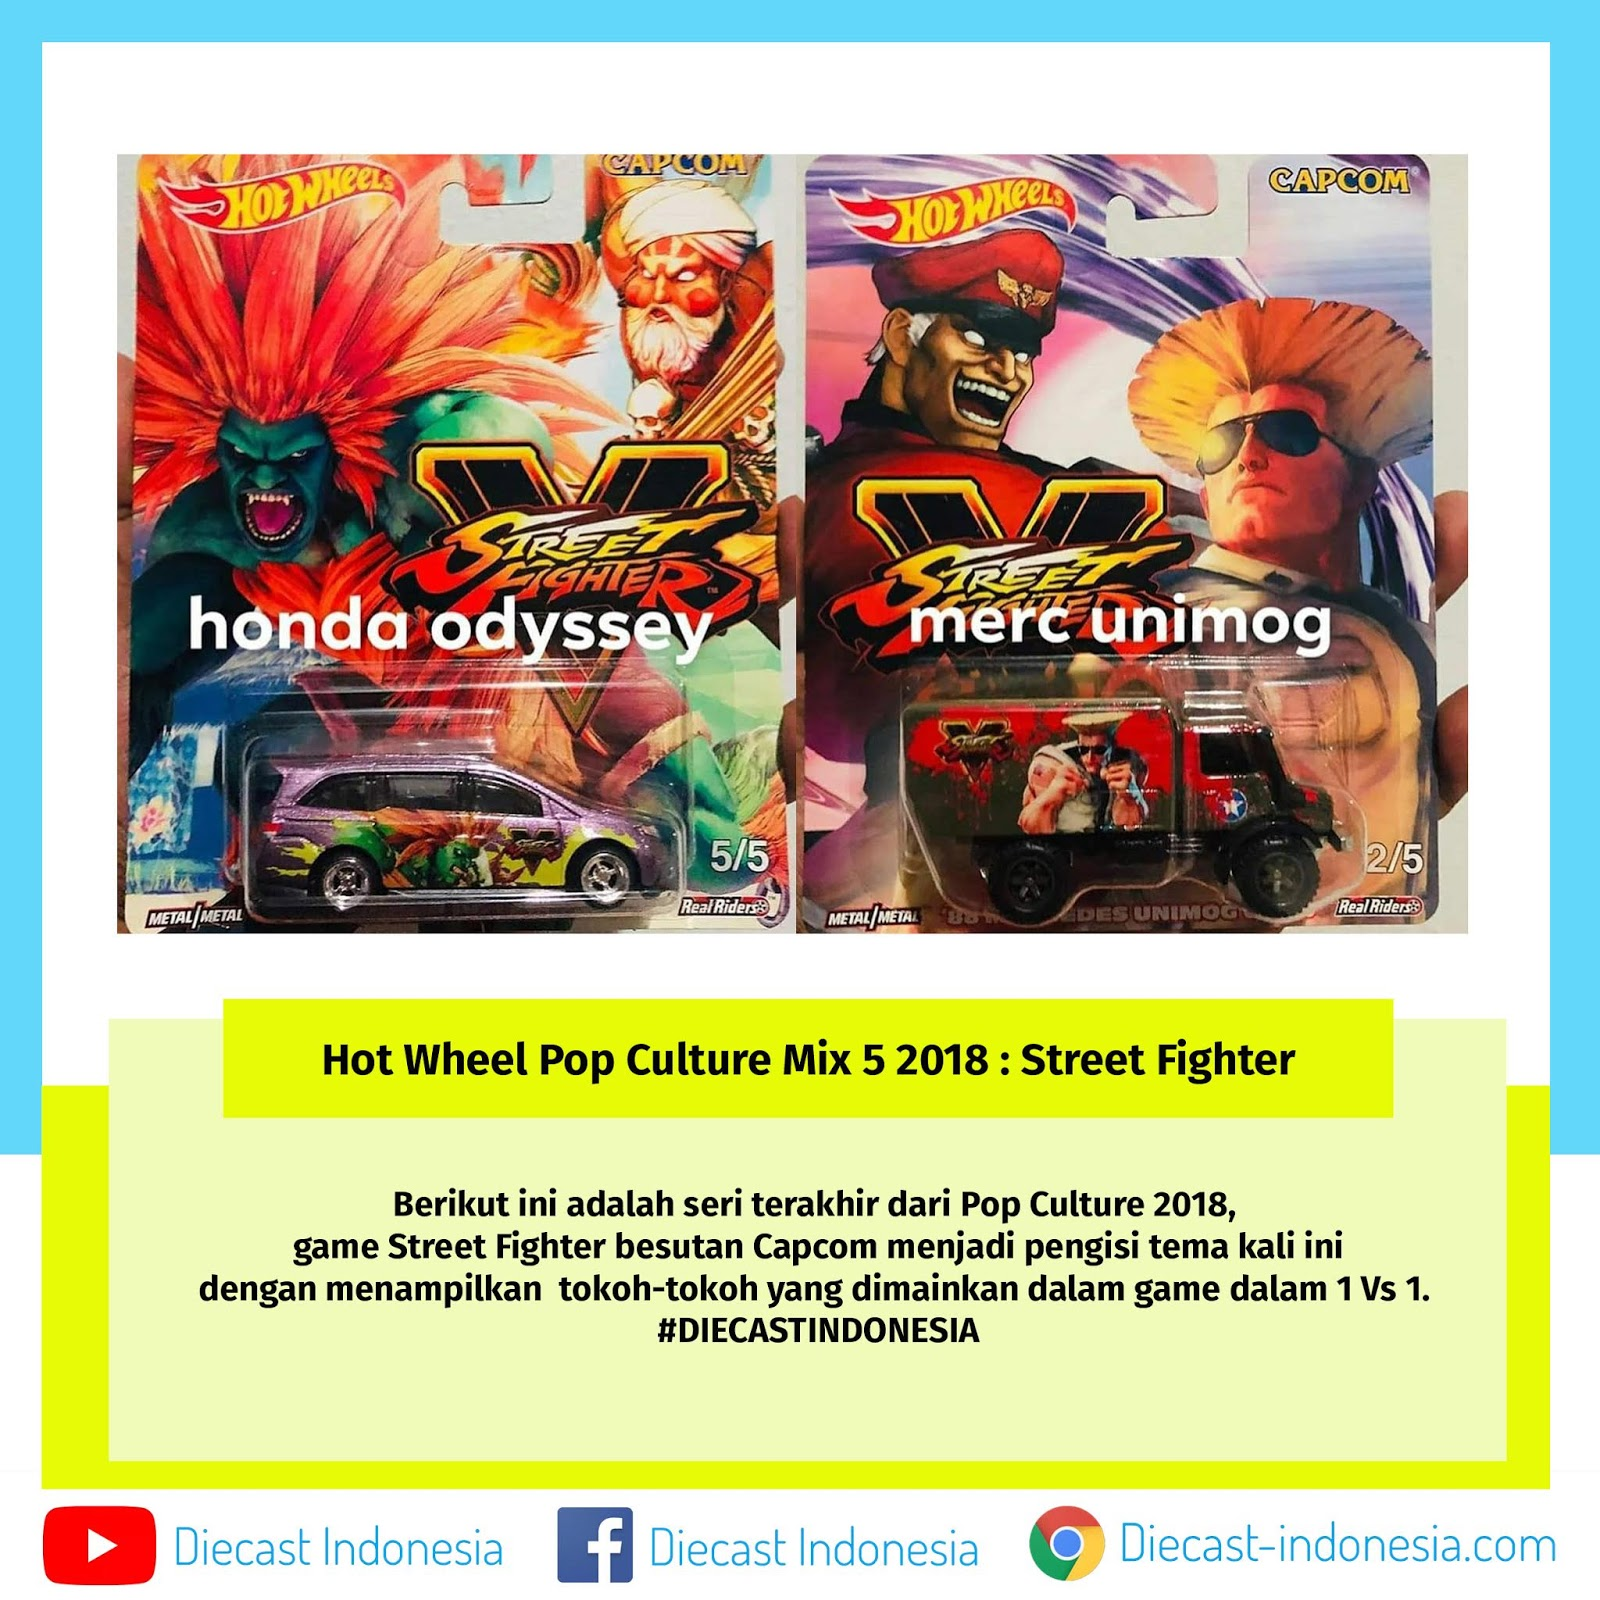 Hot Wheel Pop Culture Mix 5 2018 : Street Fighter  Diecast Indonesia